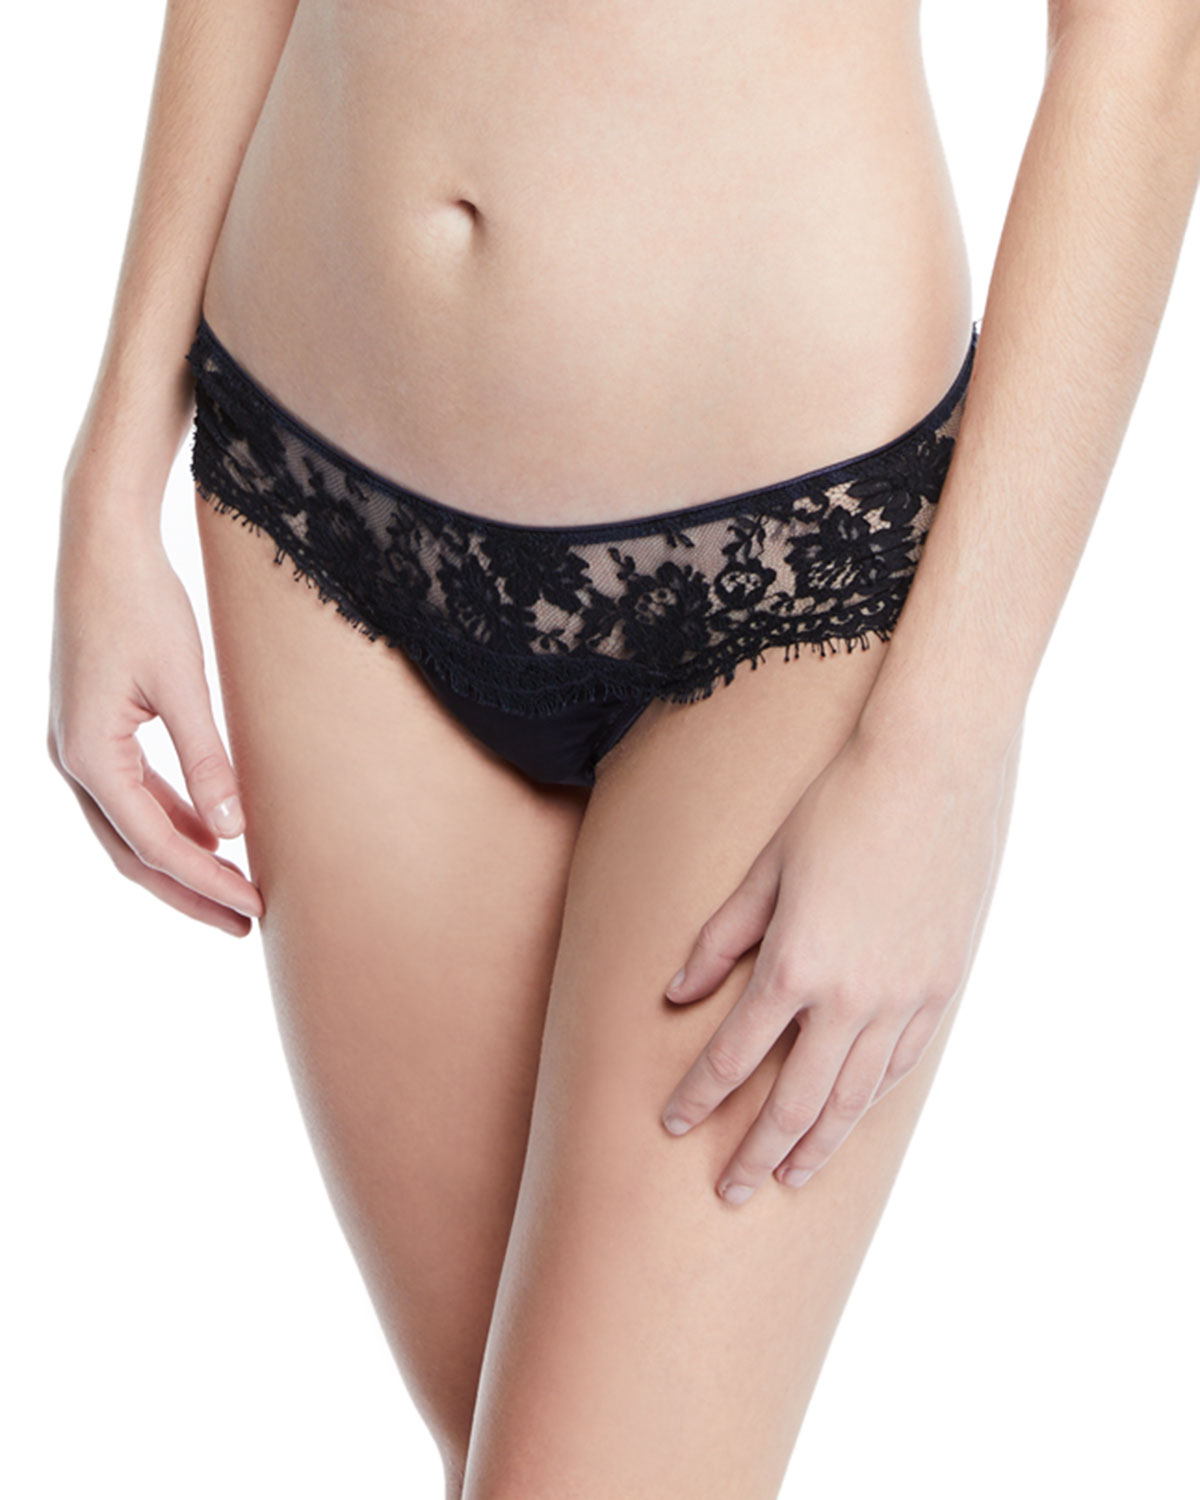 I.D. Sarrieri Fantasia Satin Lace Thong Underwear